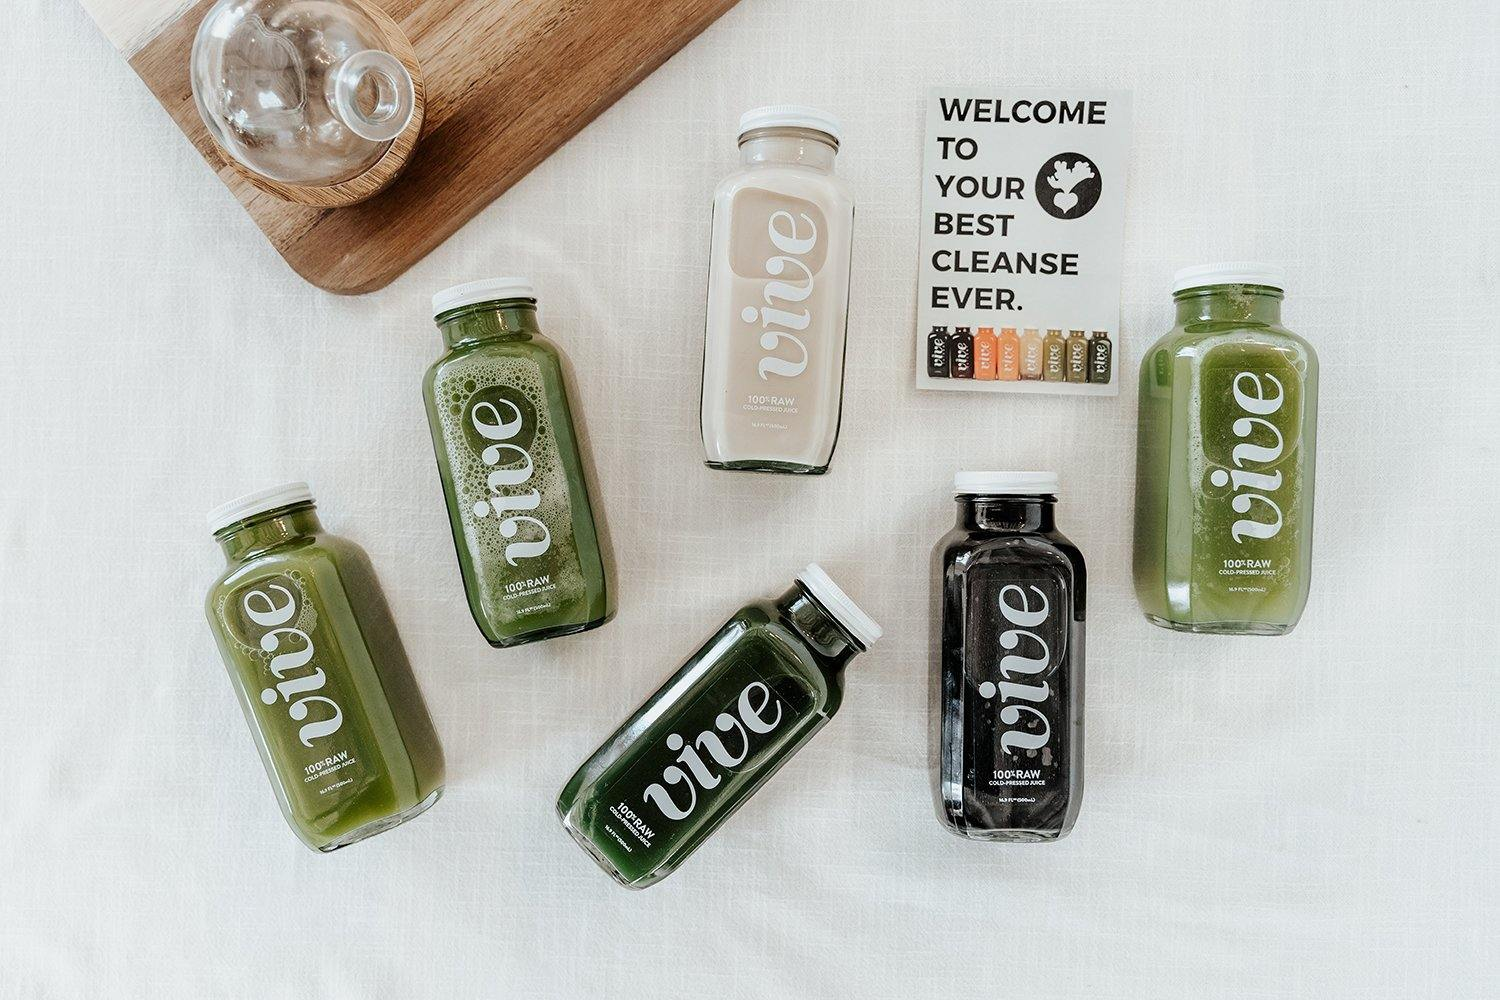 Greens Cleanse [Pre-Order] - Vive Juicery